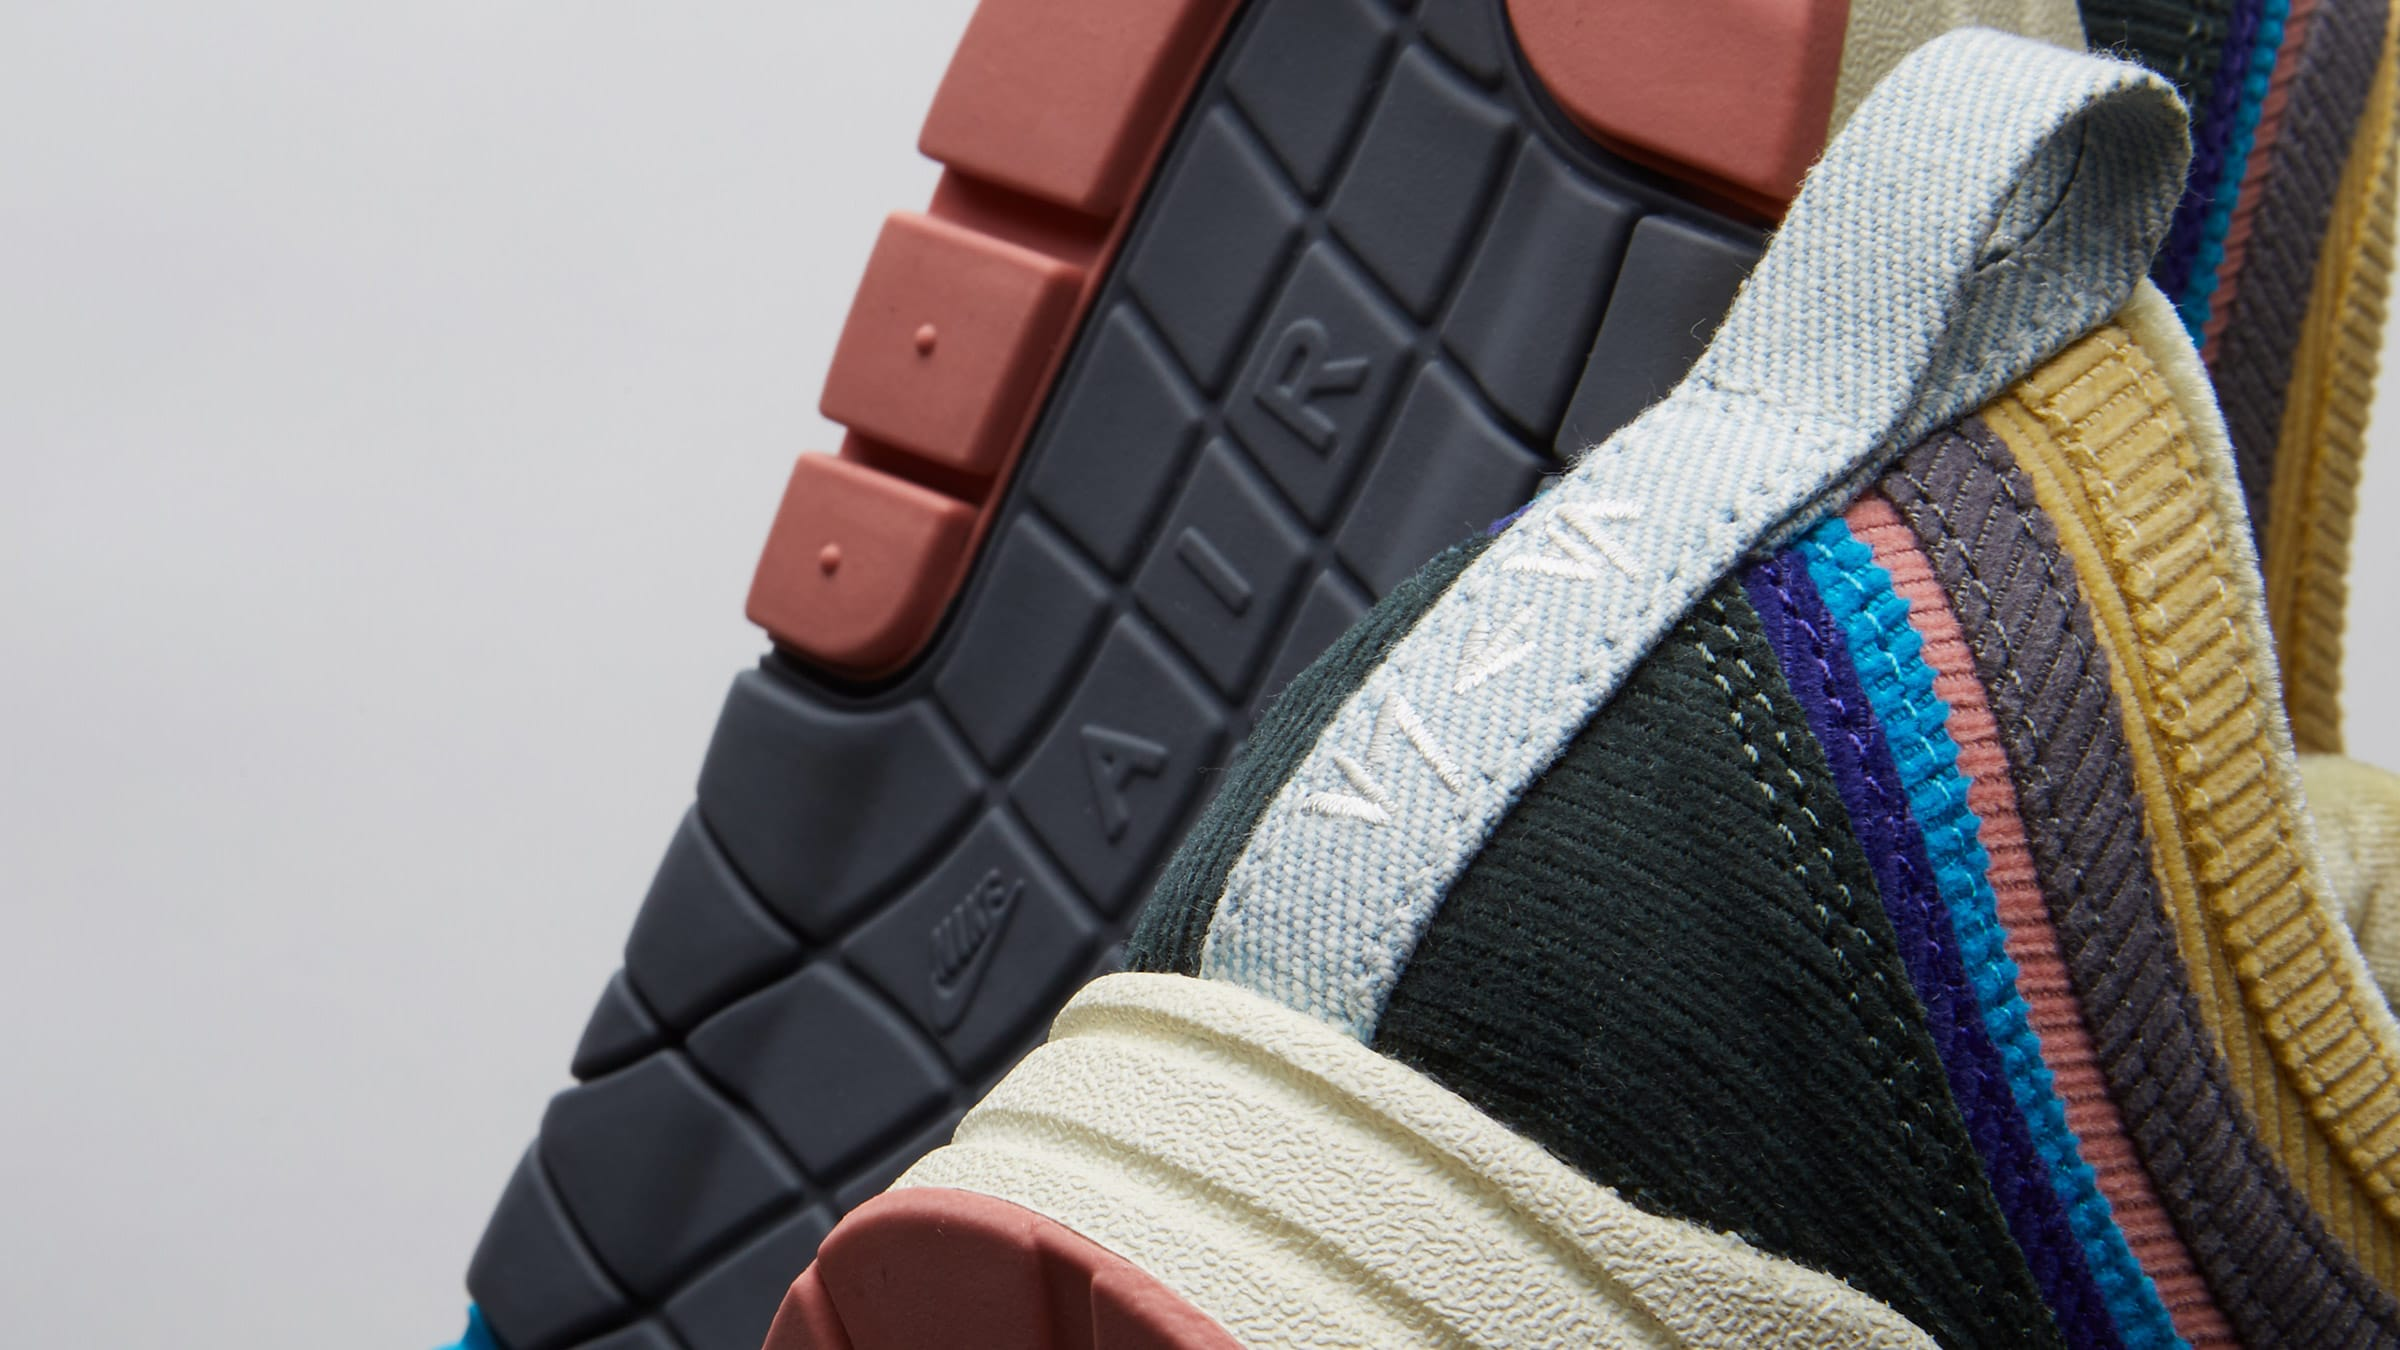 e553831e53 London, Soho, is marked with a surprise restock of Nike's much-loved Air  Max 1/97 Sean Wotherspoon.